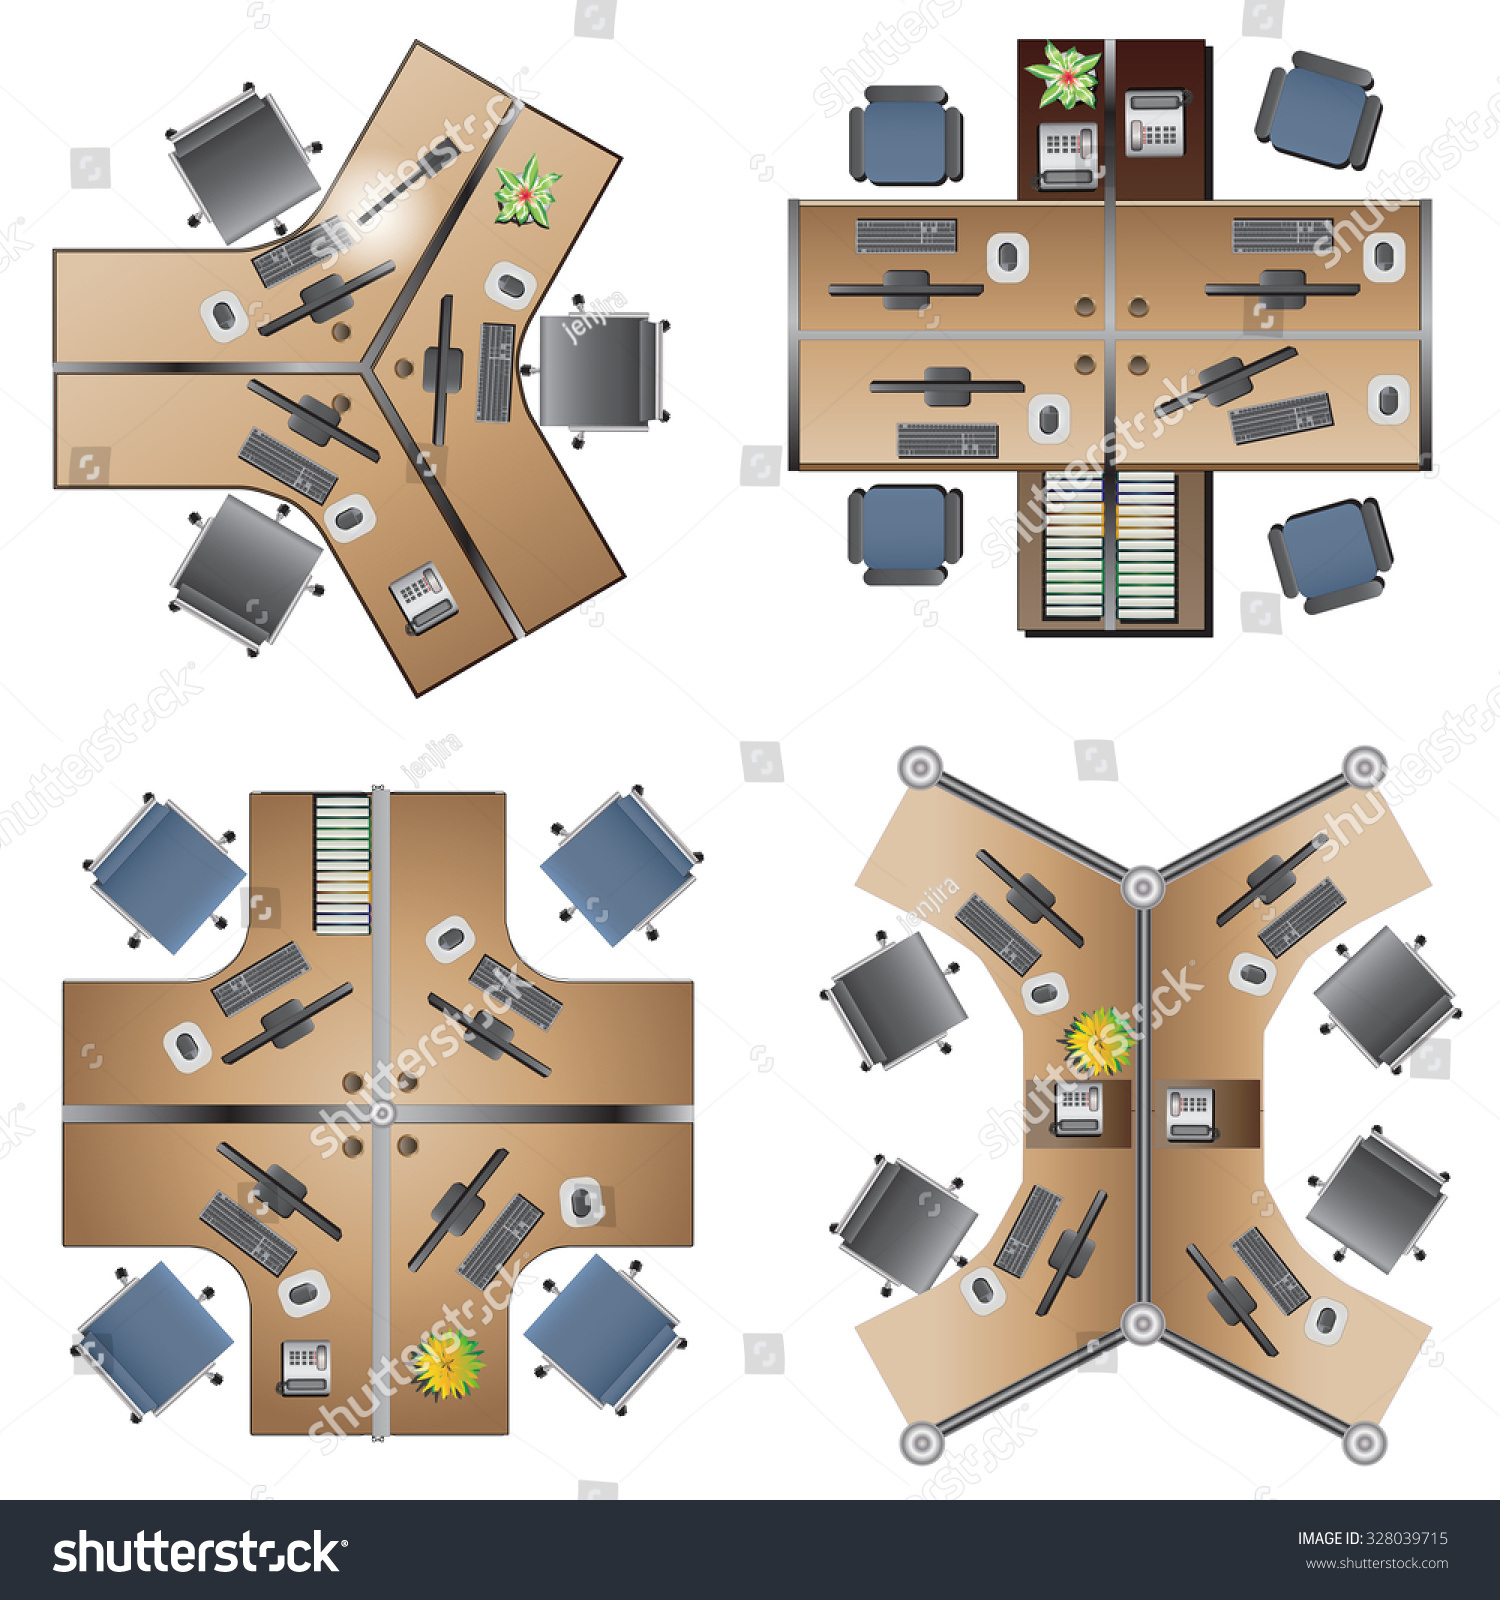 Office Furniture Top View Psd Furniture Vectors, Photos And Psd Files ...  TEXT2